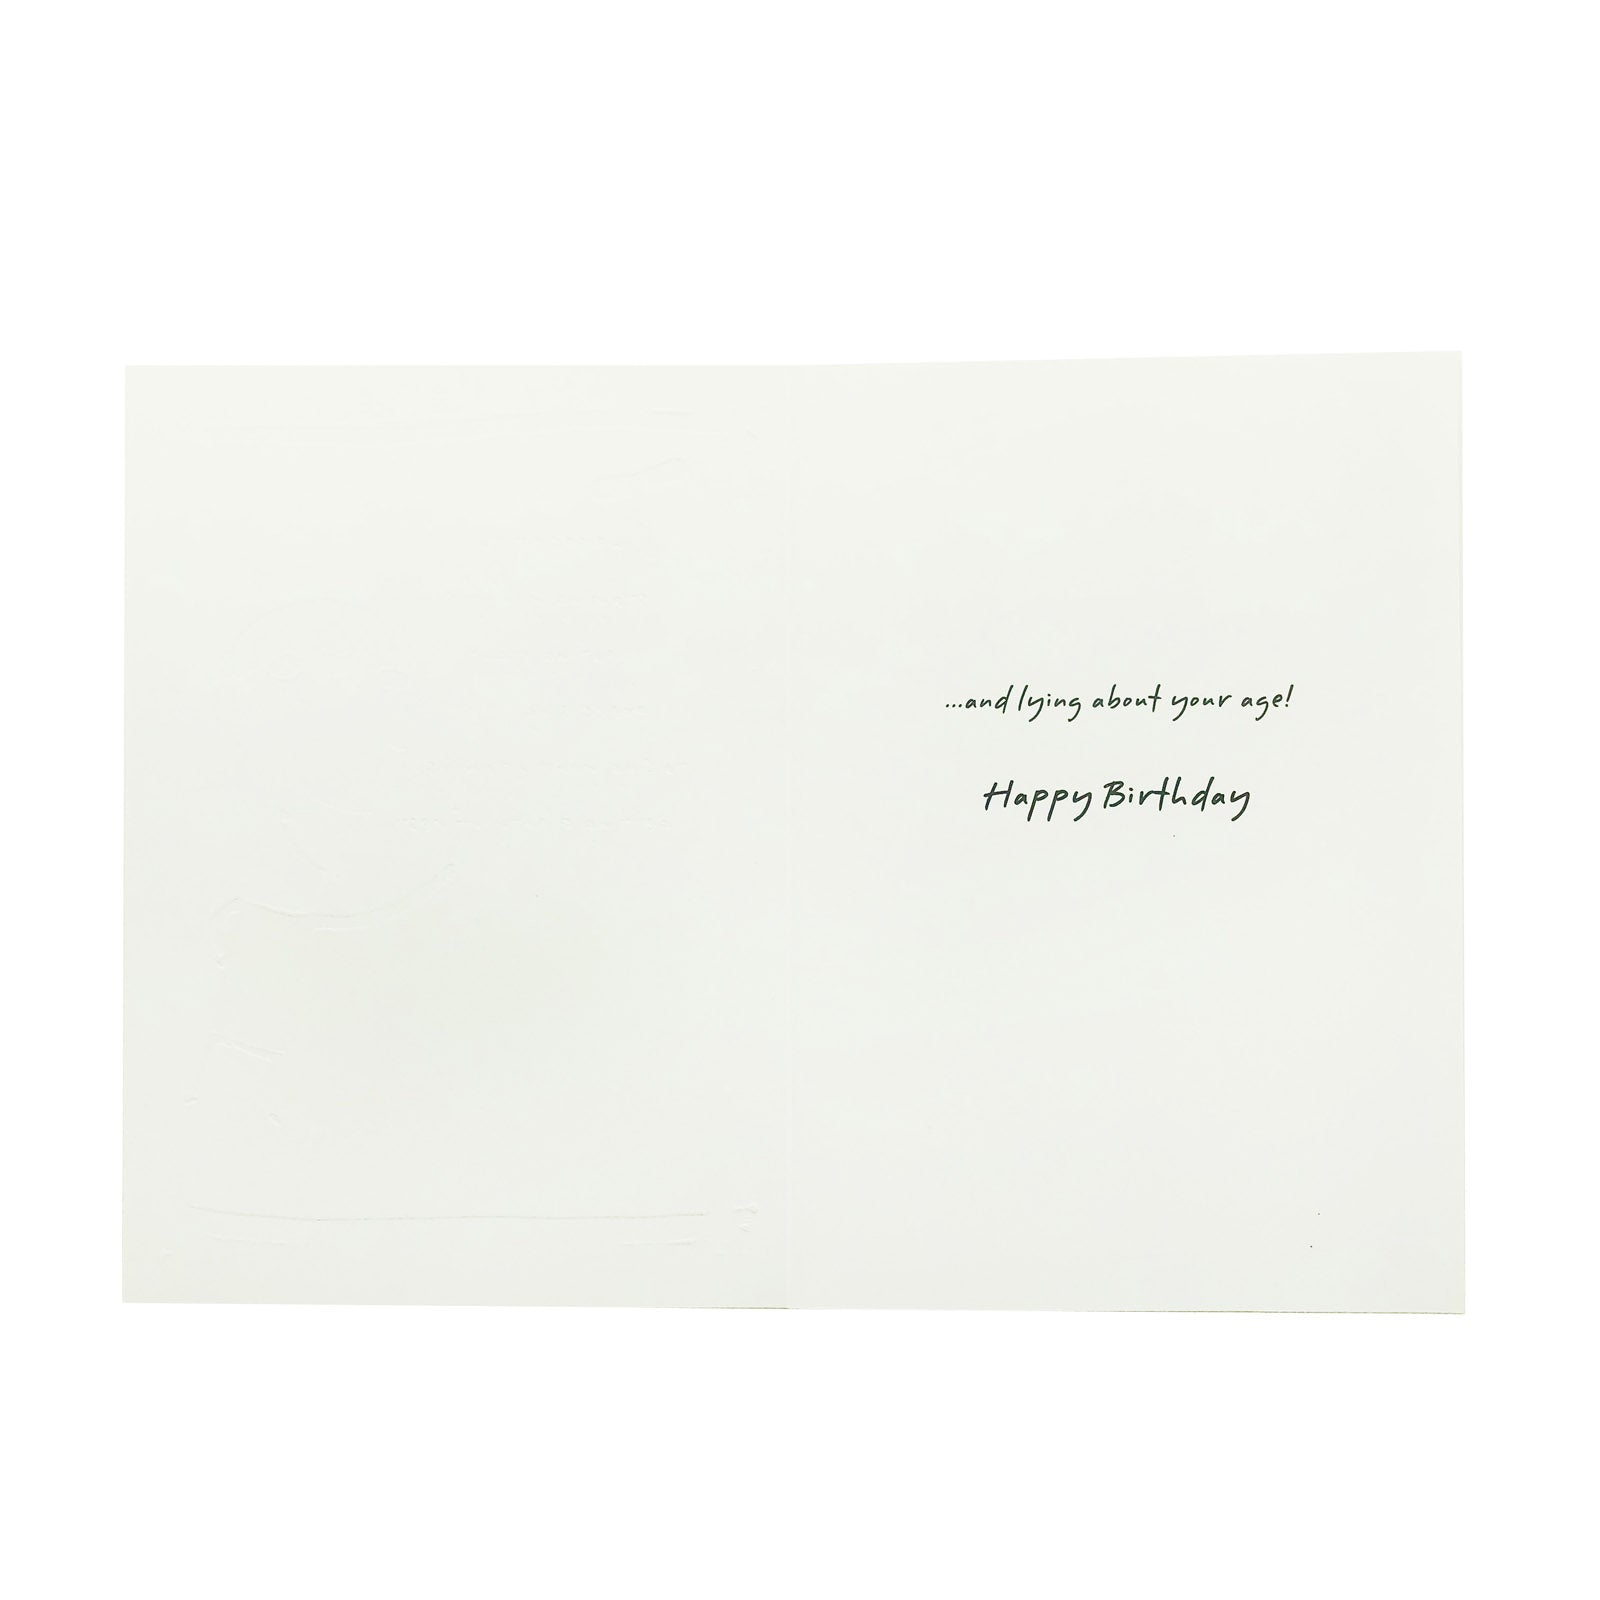 Designer Greetings Birthday Card - The Secret To Staying Young